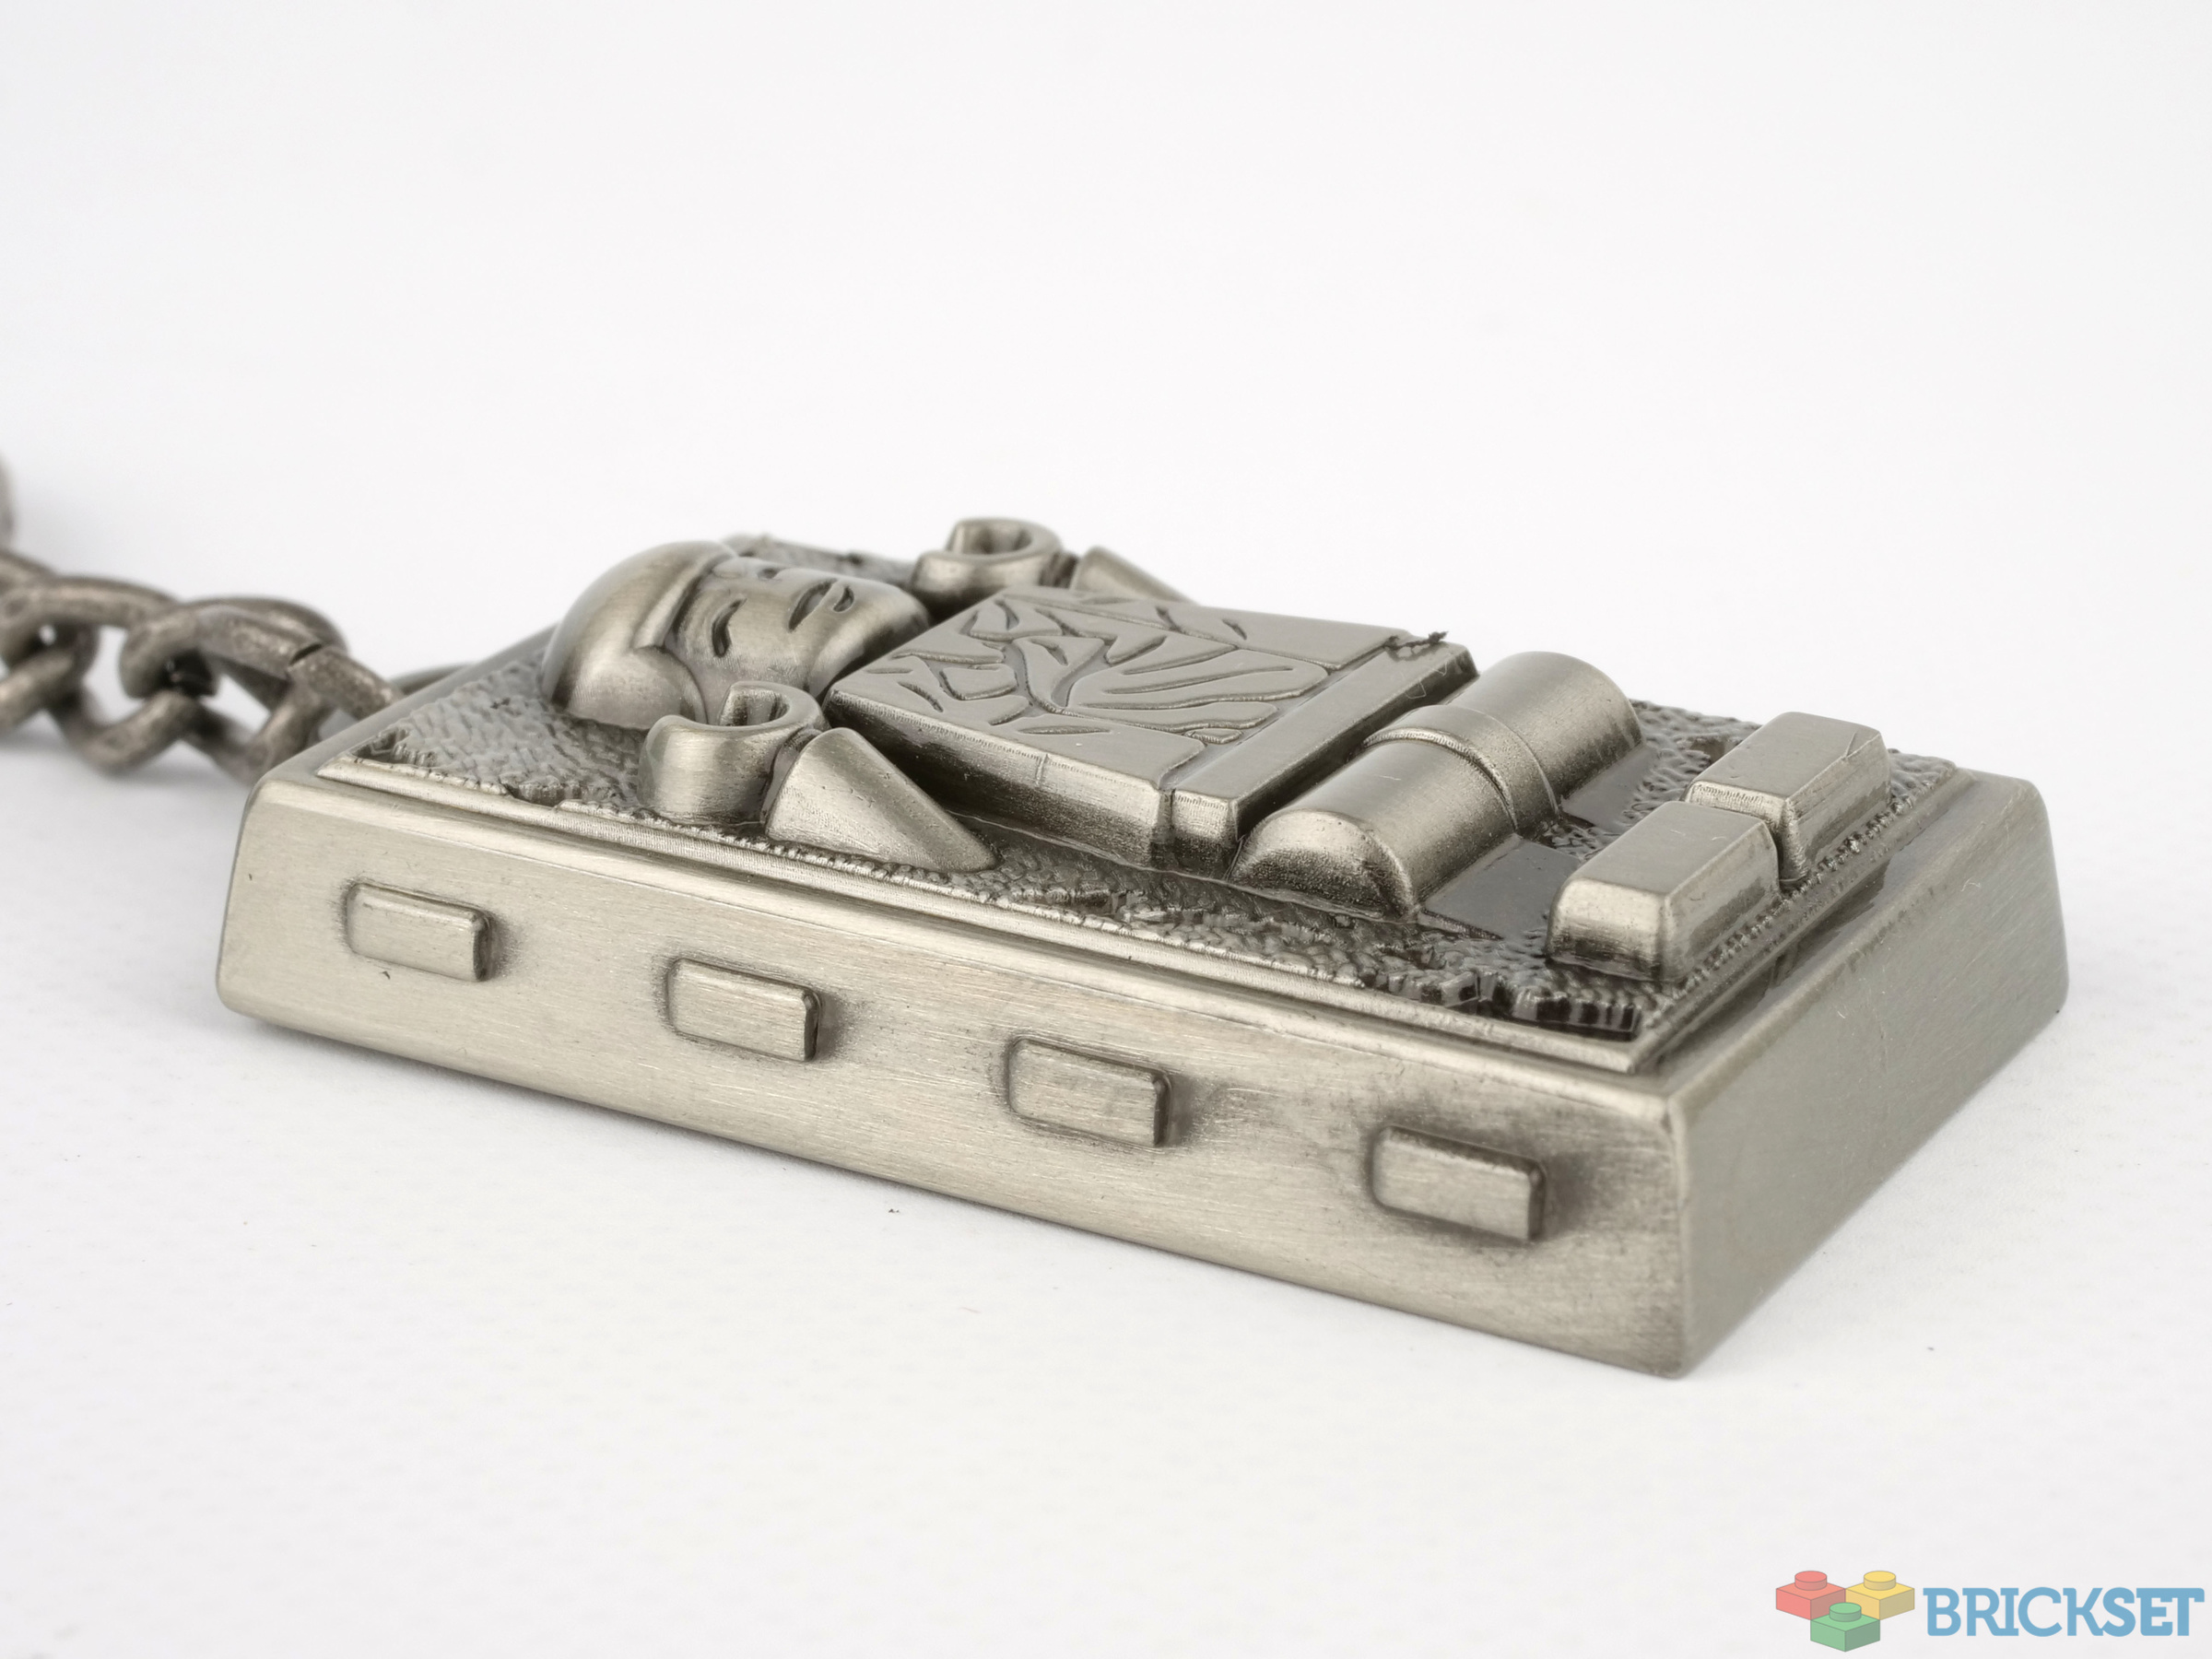 Review: Han Solo in Carbonite key chain